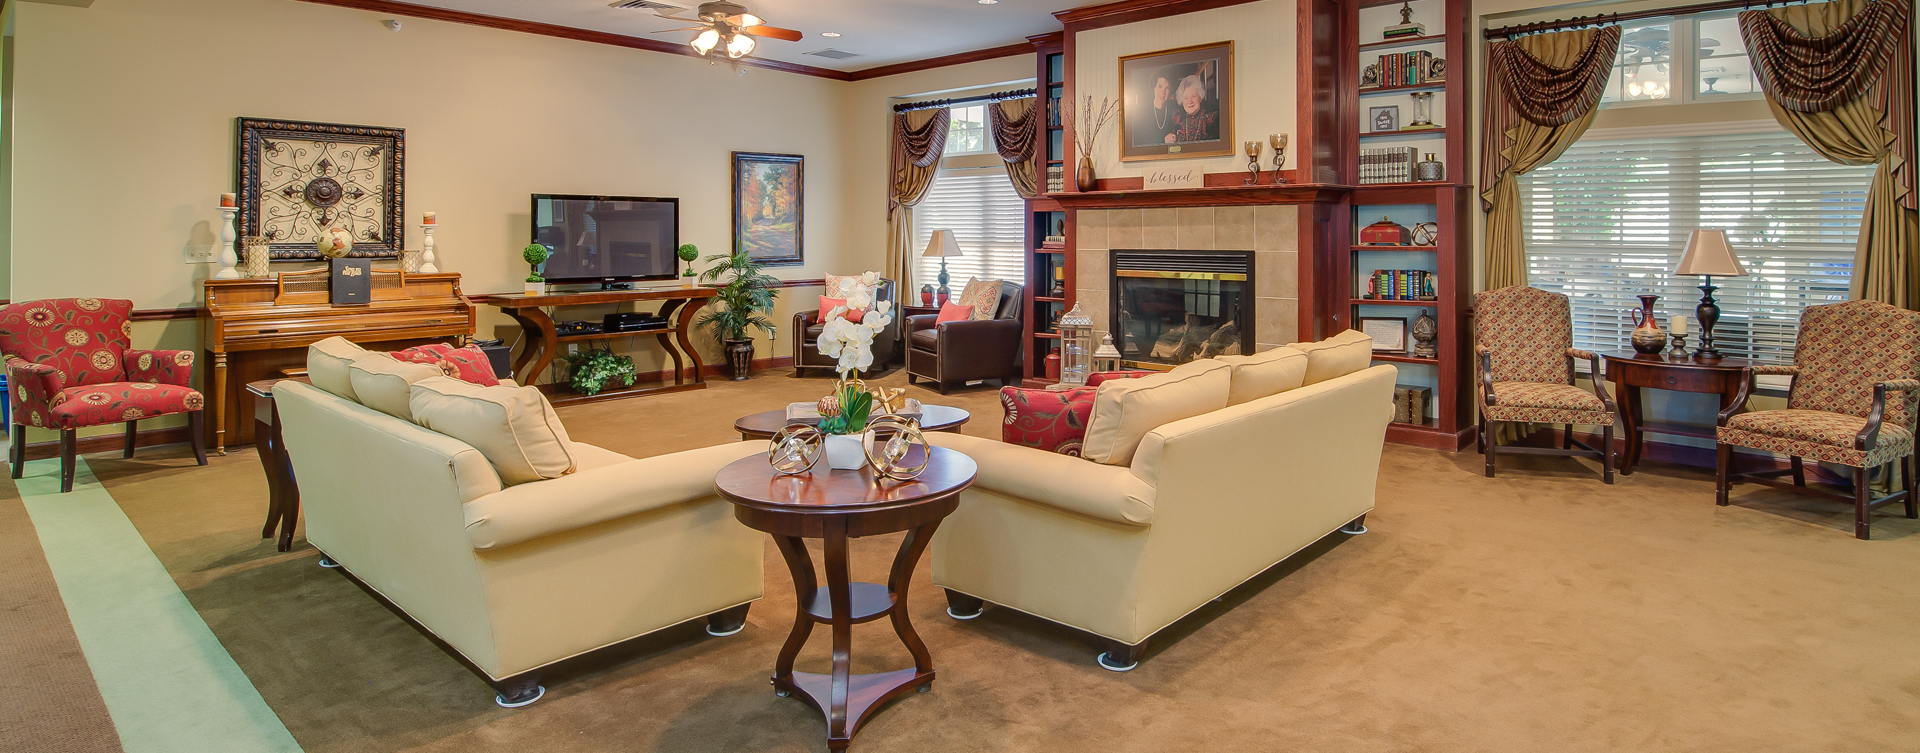 Enjoy a good book in the living room at Bickford of Portage